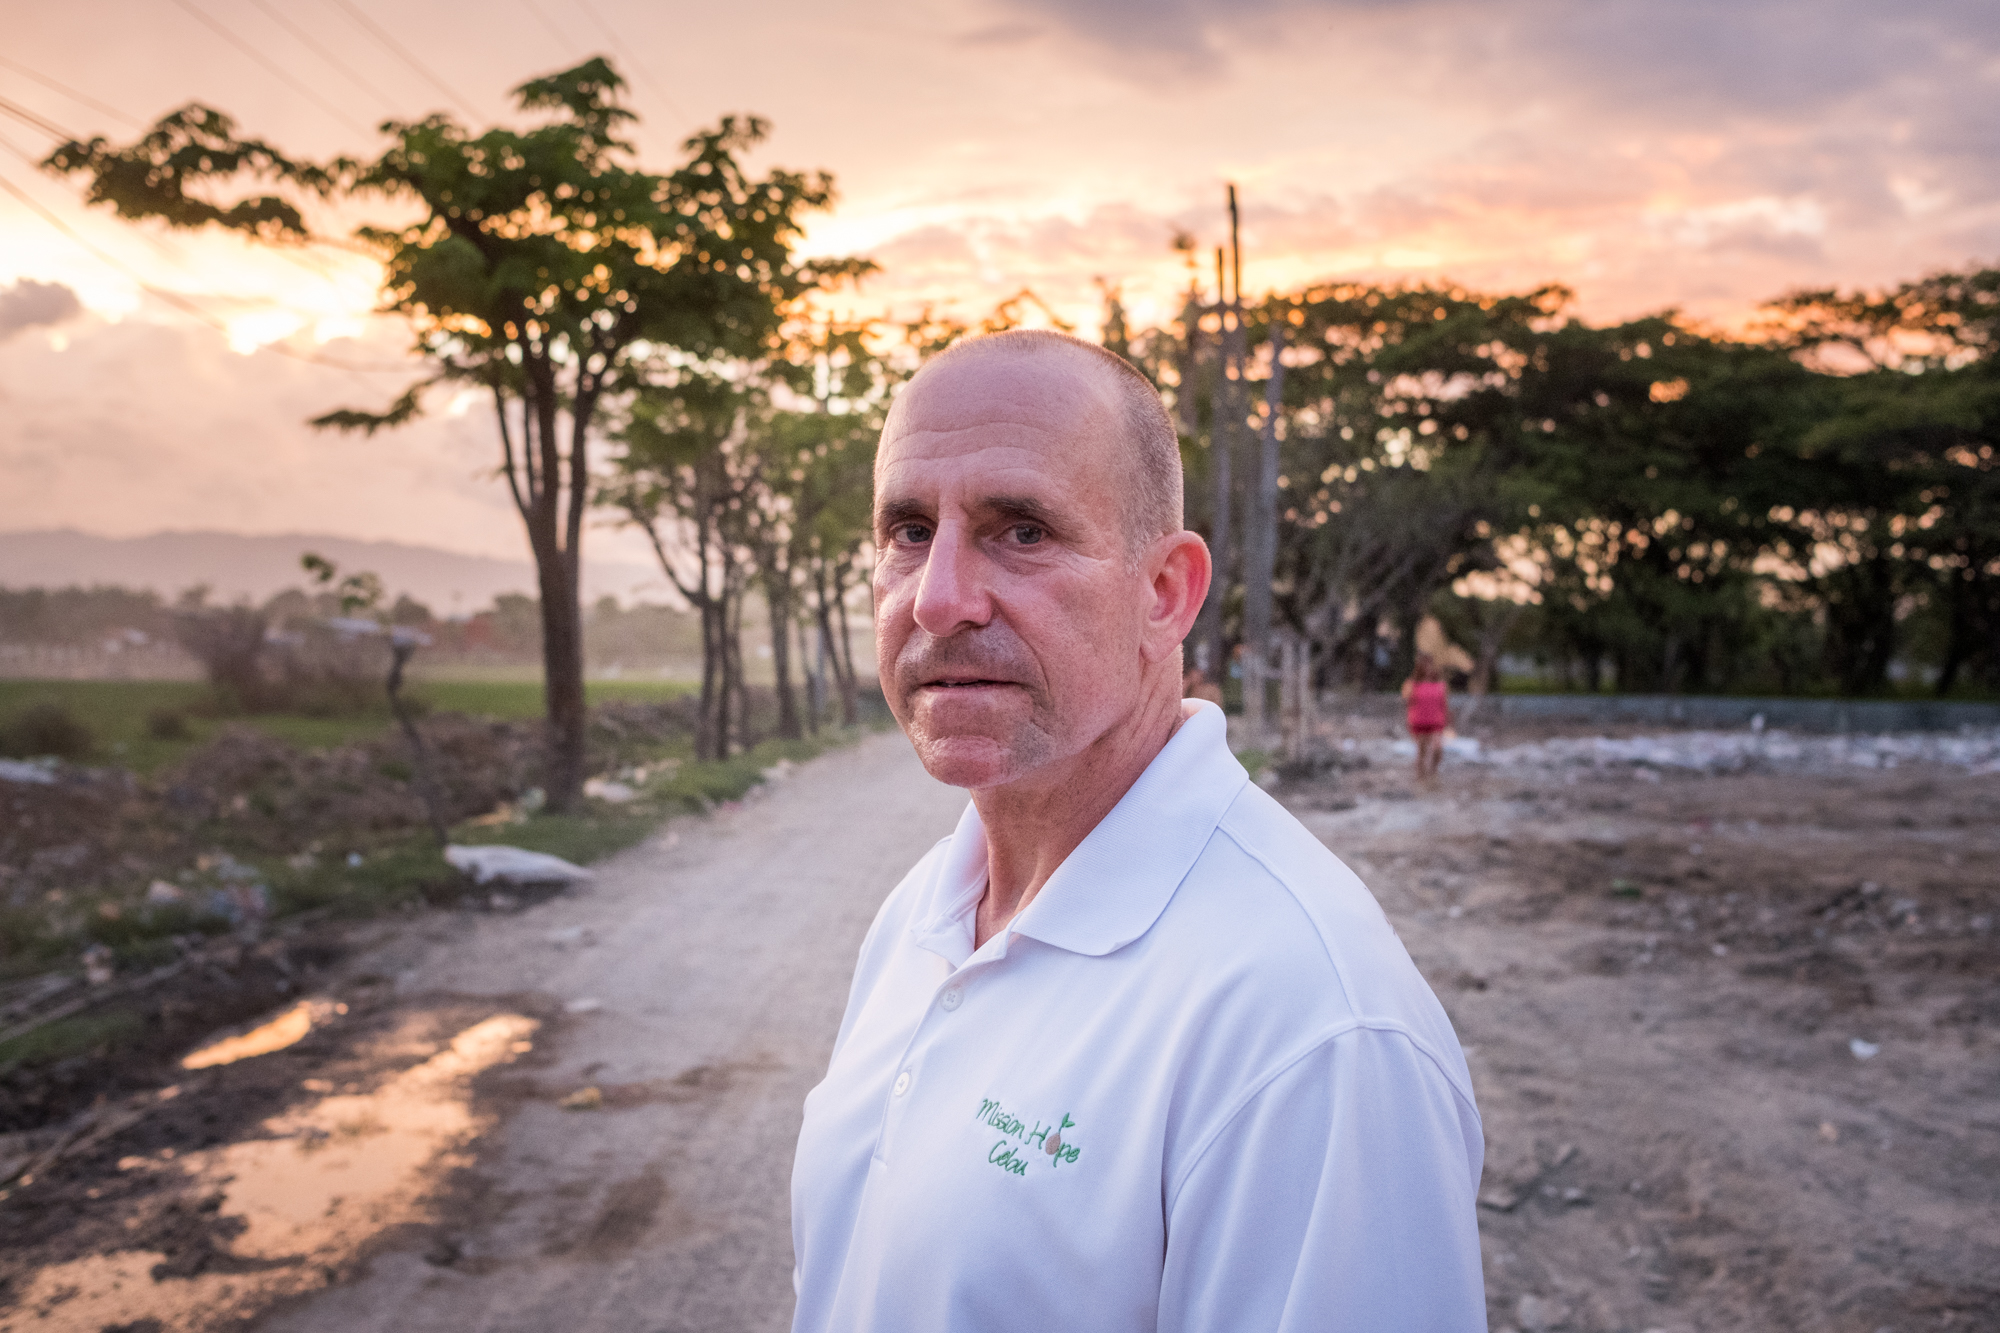 Frank Becker, a Hilton Team Member and Thrive Sabbatical winner, poses for a portrait on a road leading to the Mandaue Dump Site in Cebu, Philippines. Frank uses his personal vacation and savings to make a difference in this community.